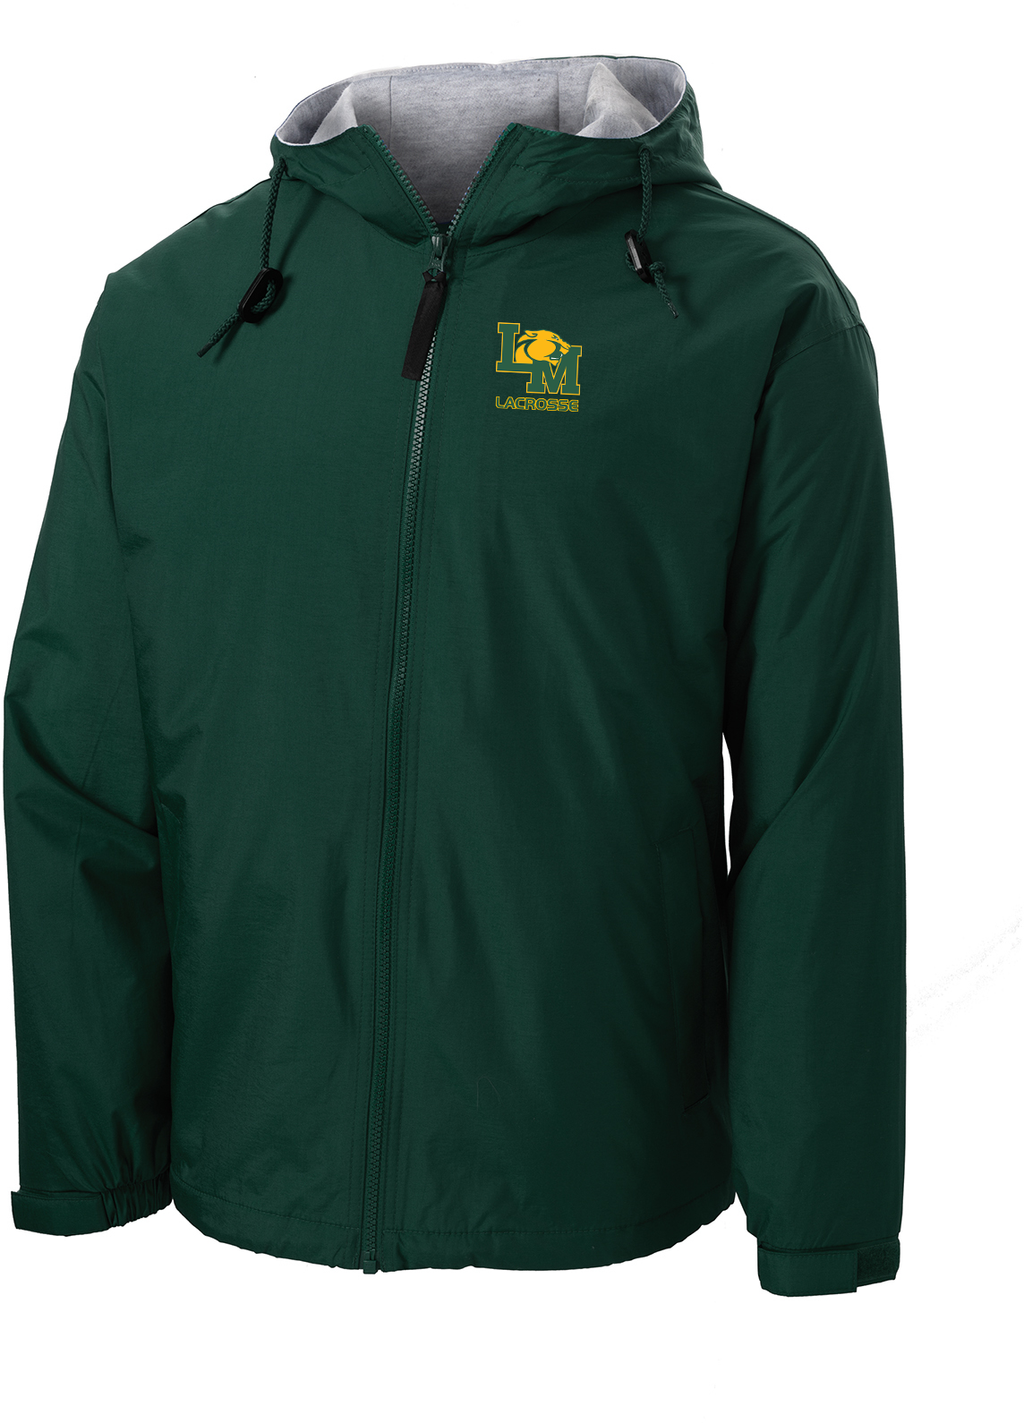 Little Miami Lacrosse Forest Green Hooded Jacket